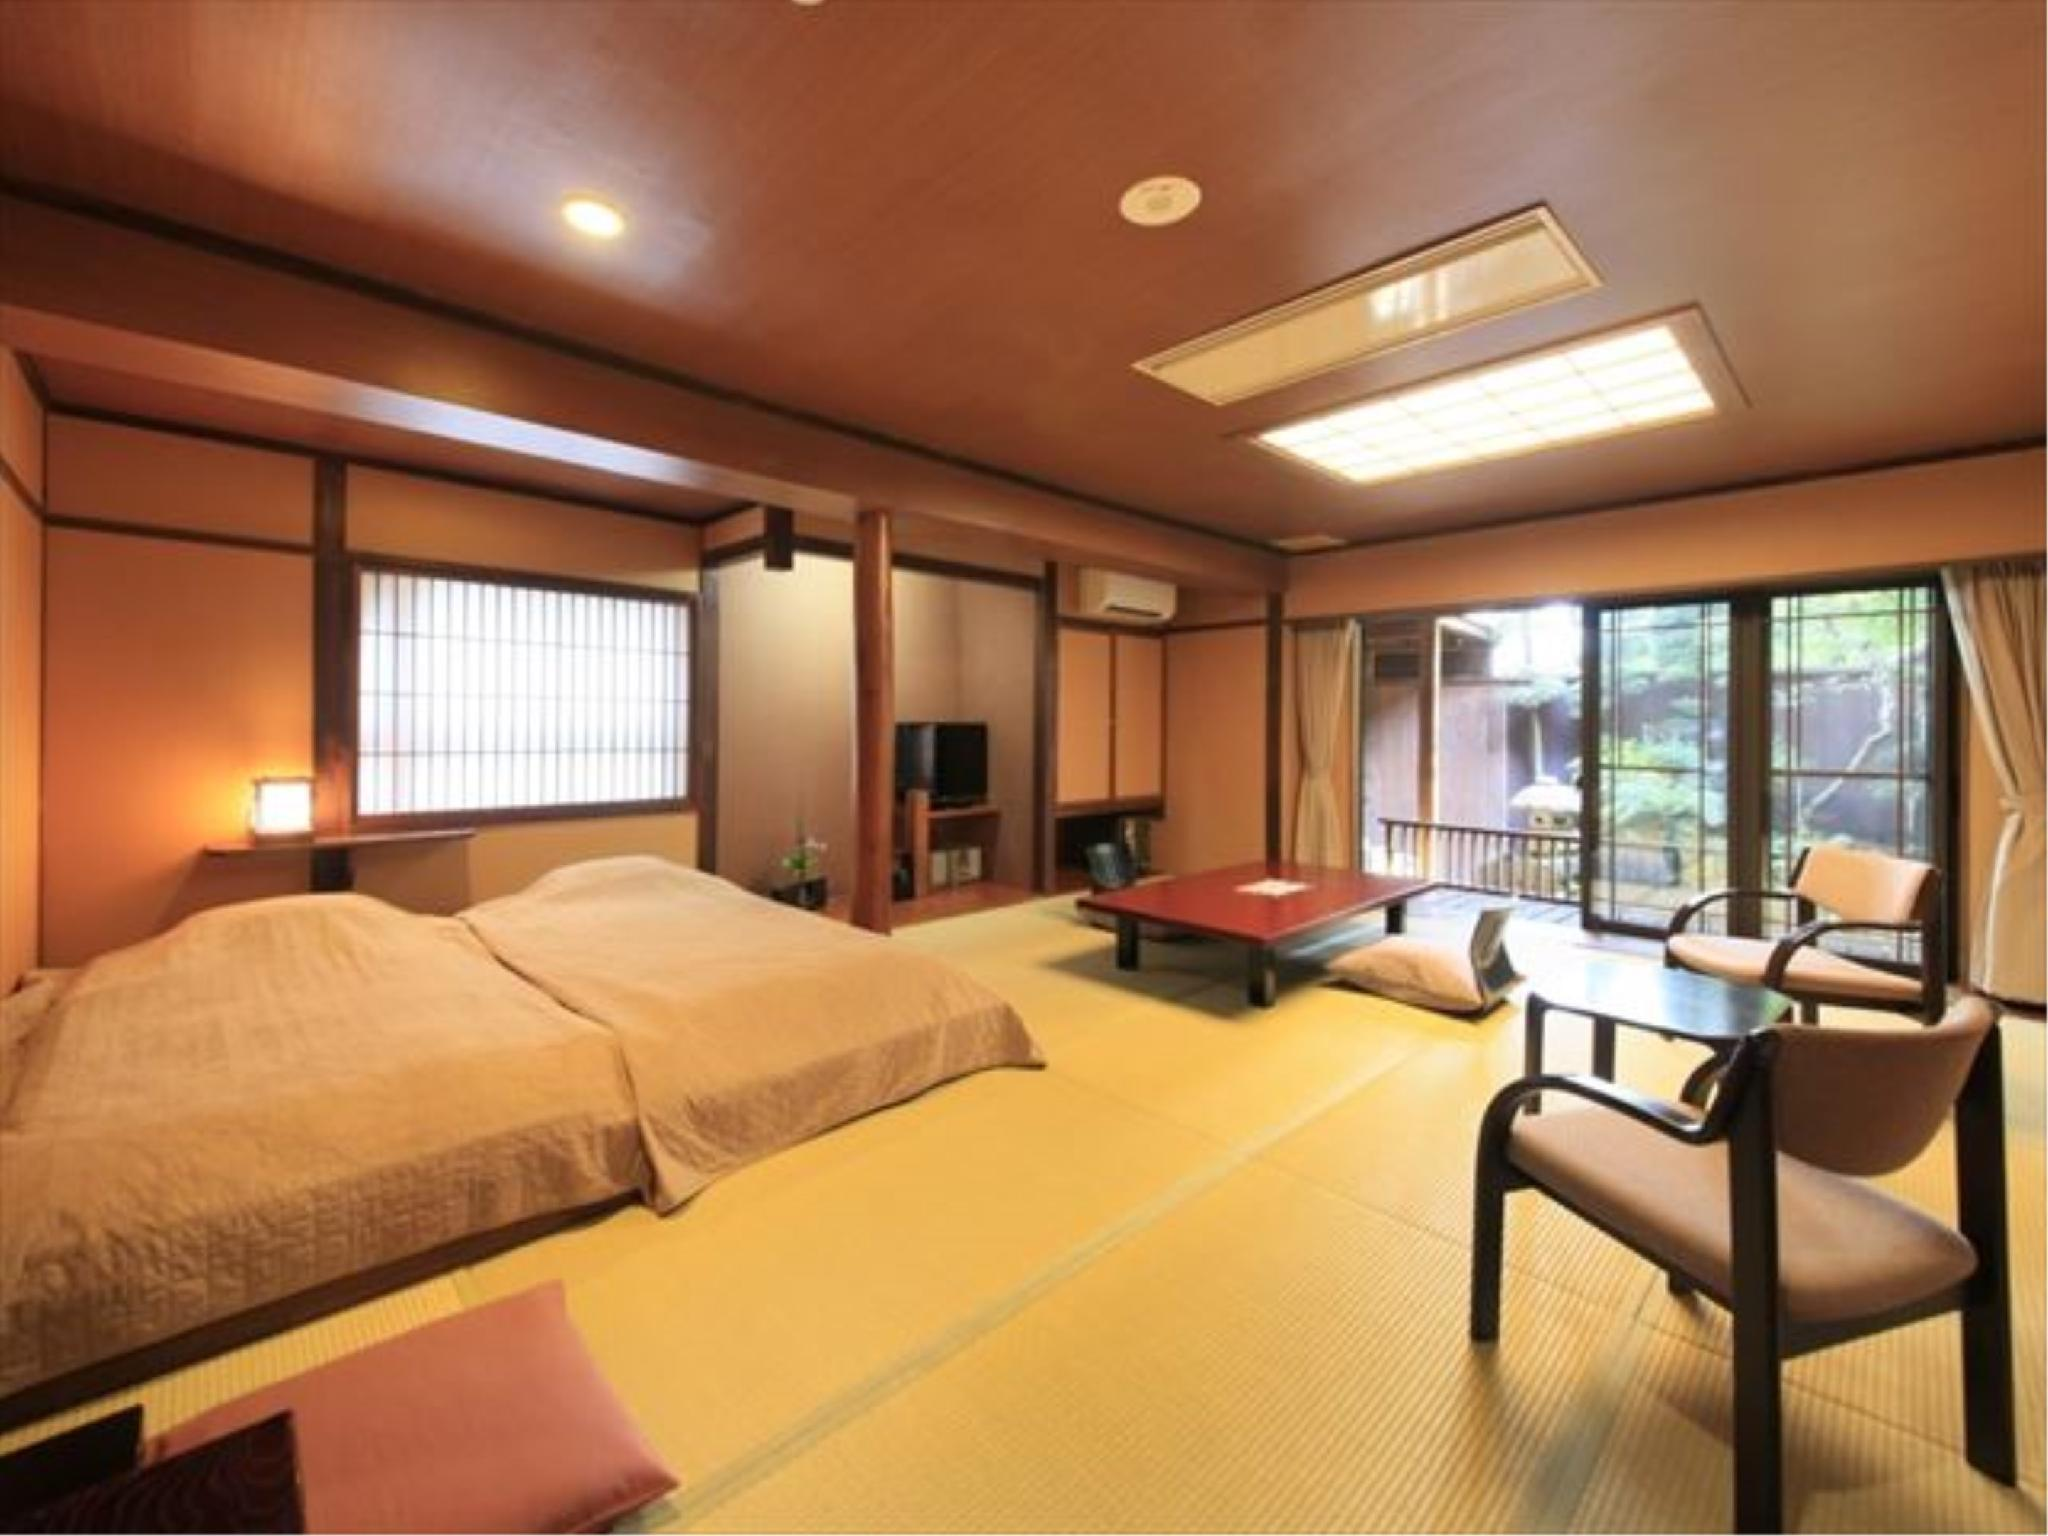 다다미 객실(특별실/DAIDAIIRO/노천탕/저상침대) (Special Japanese-style Room with Open-air Bath (Low Bed(s), Daidaiiro Type))